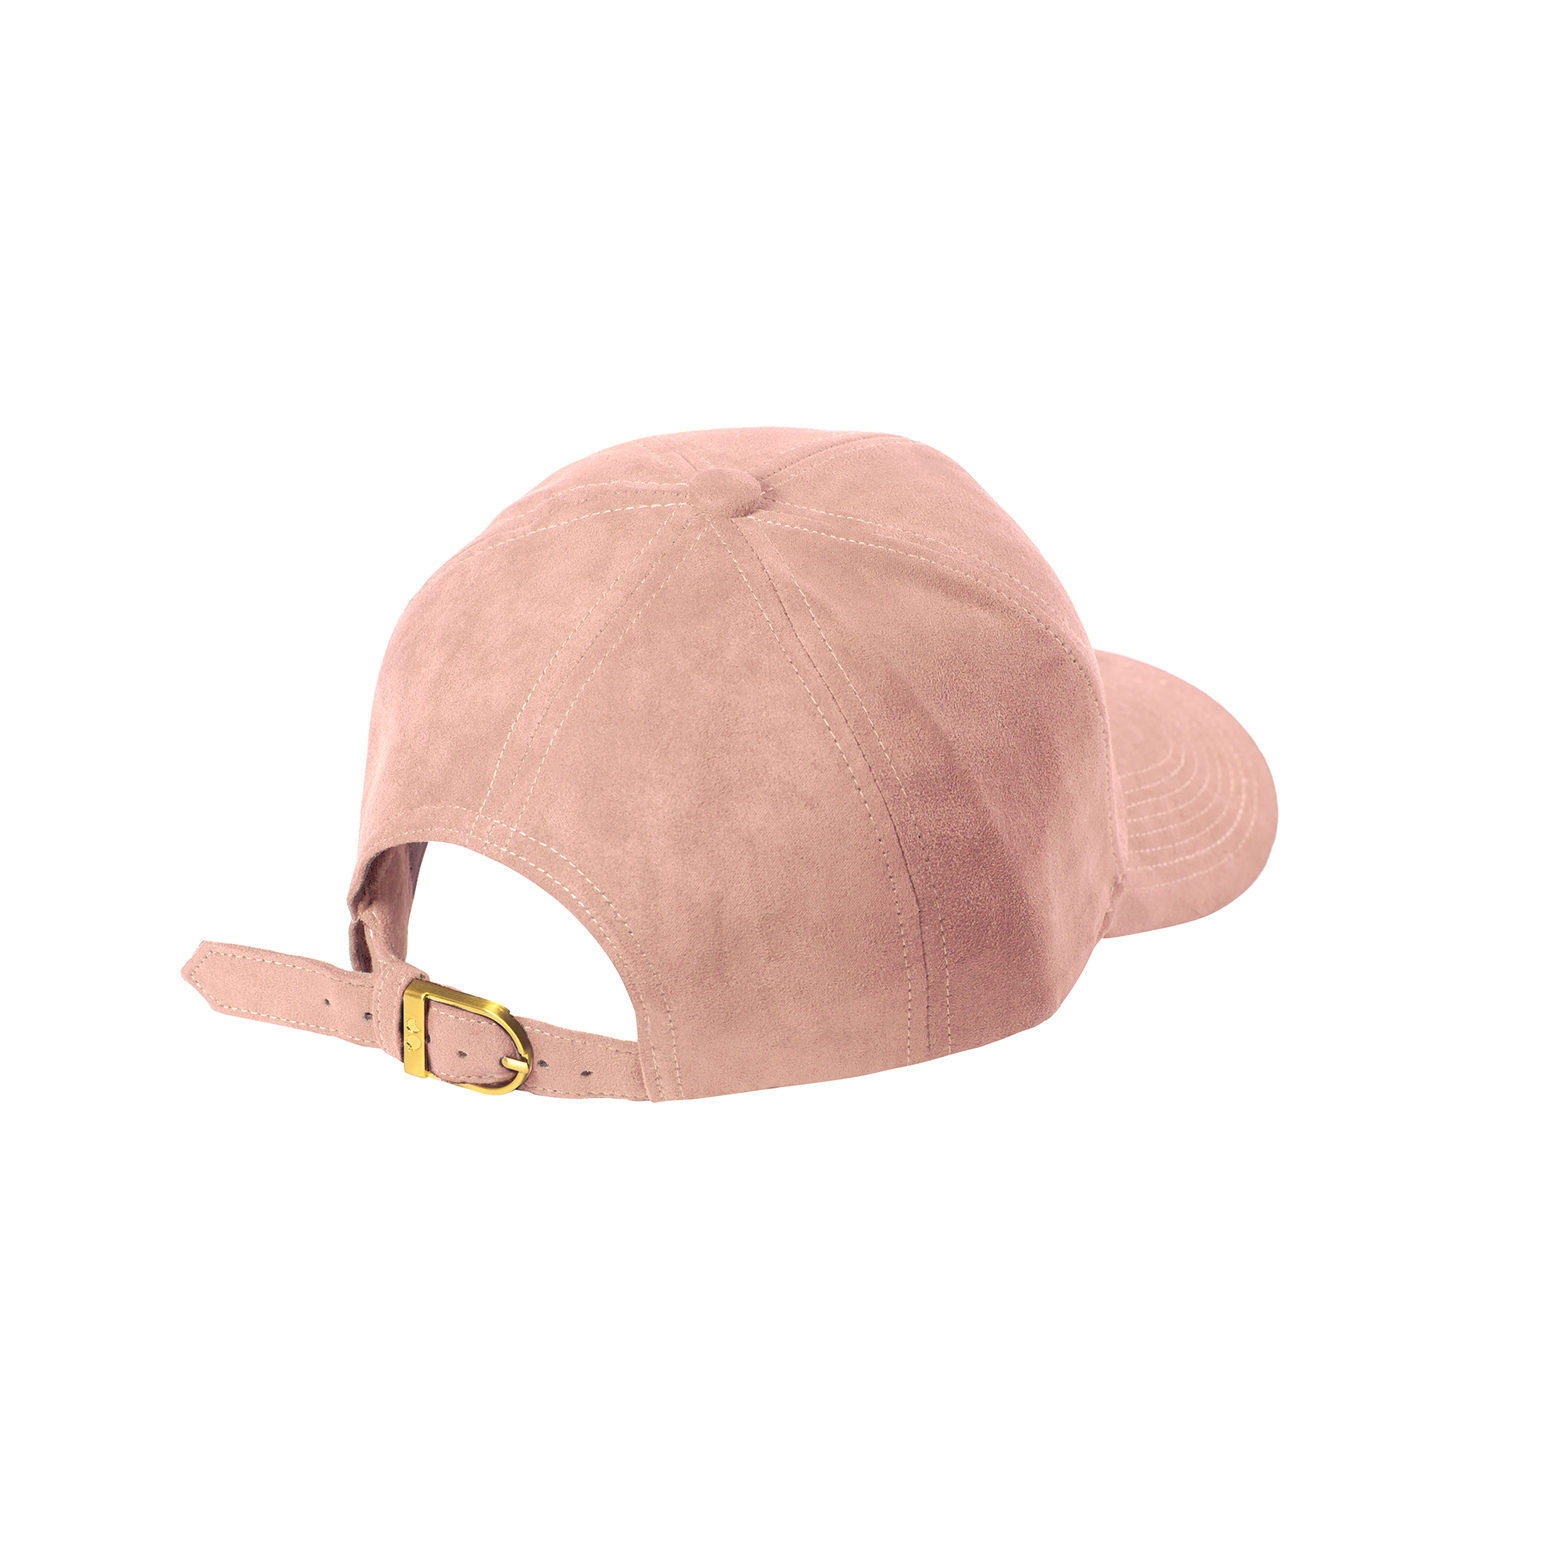 BASEBALL CAP CLOUD PINK SUEDE GOLD BACK SIDE